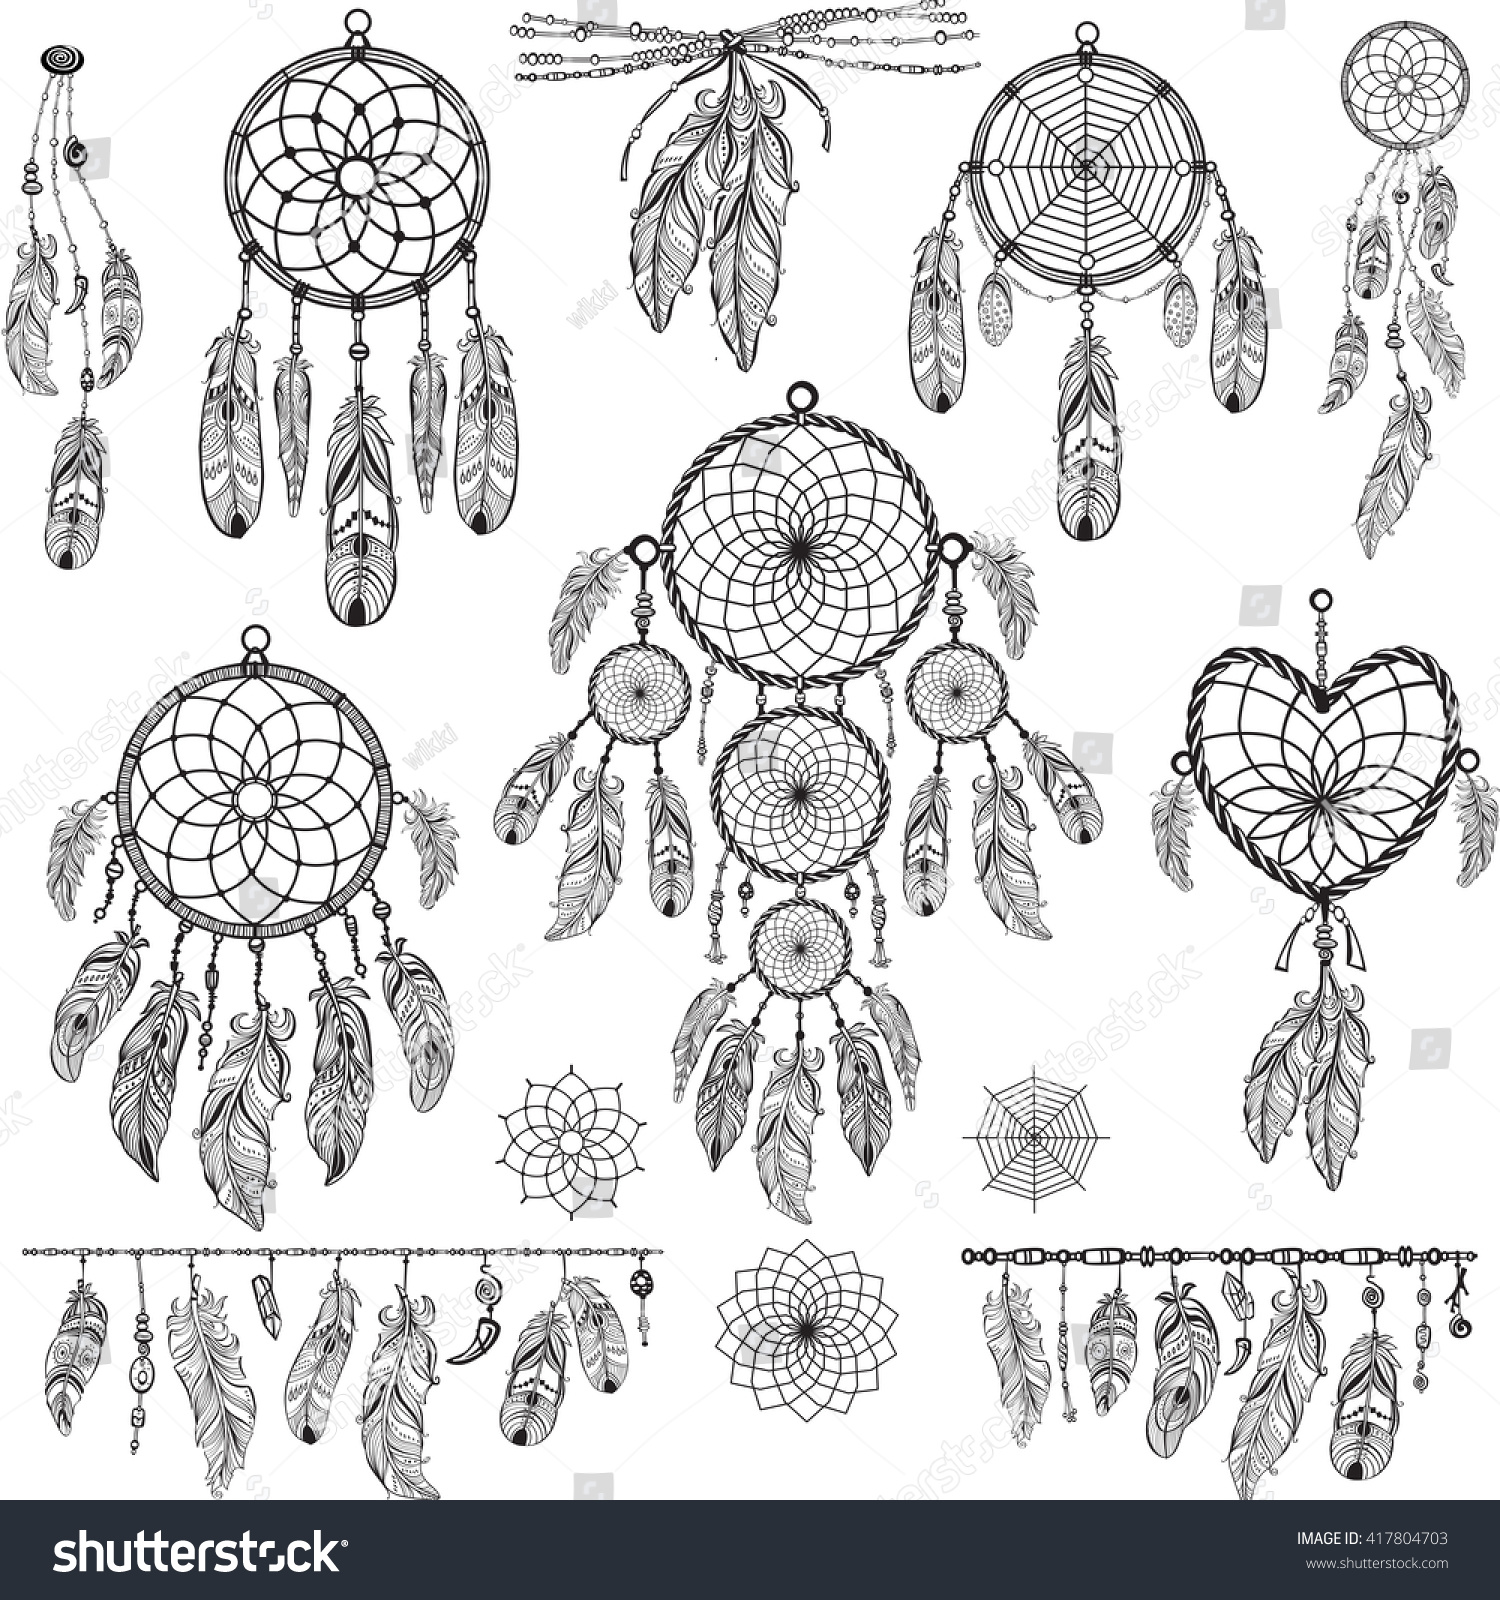 Tattoo designs coloring book - Design Elements In Boho Style Lineart Native Style Tattoo